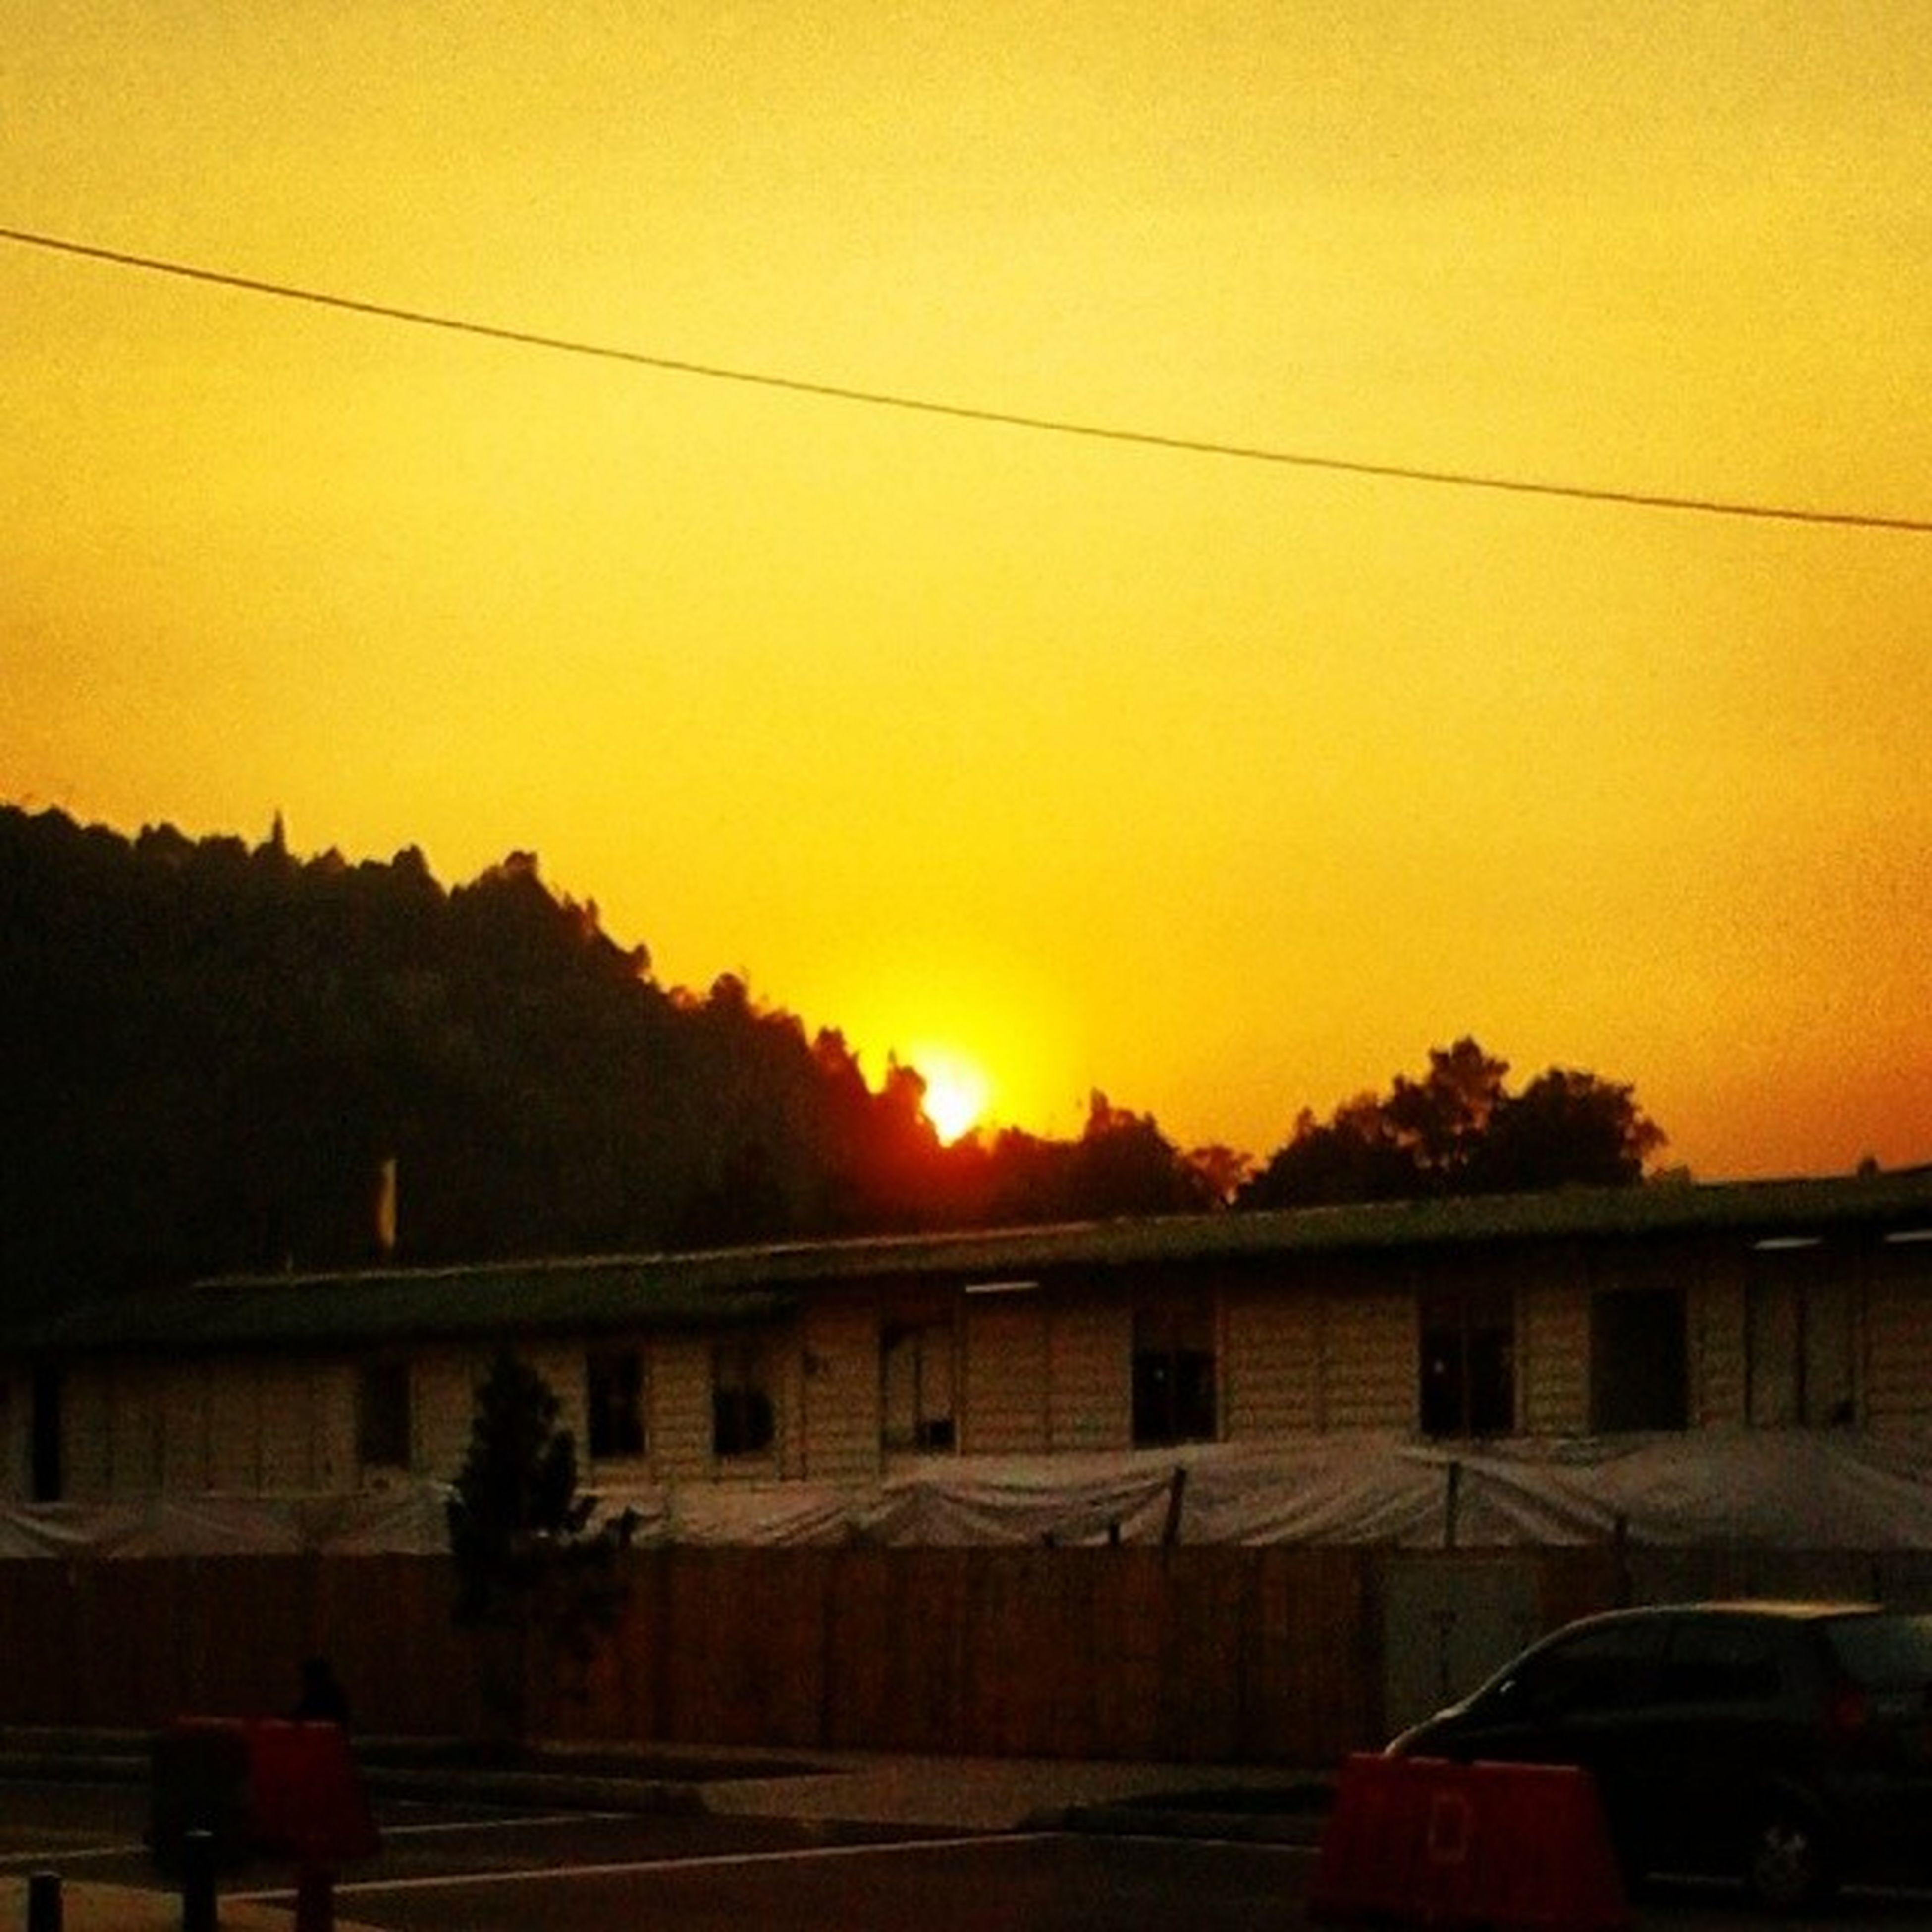 sunset, orange color, transportation, sky, mode of transport, land vehicle, building exterior, built structure, silhouette, architecture, tree, nature, beauty in nature, car, yellow, railing, scenics, outdoors, sun